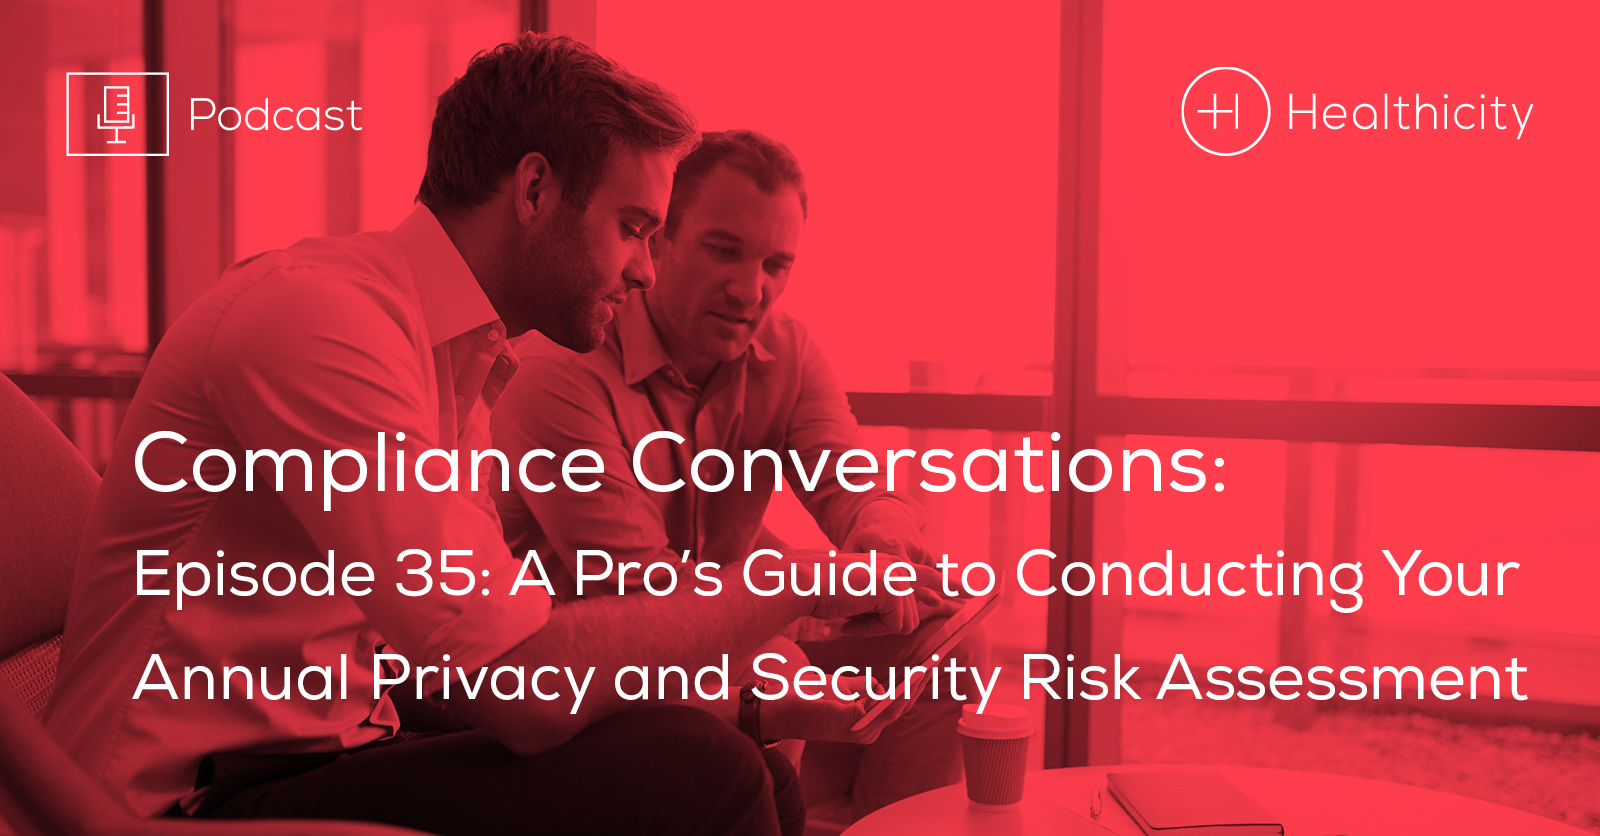 Listen to the Episode - A Pro's Guide to Conducting Your Annual Privacy and Security Risk Assessment